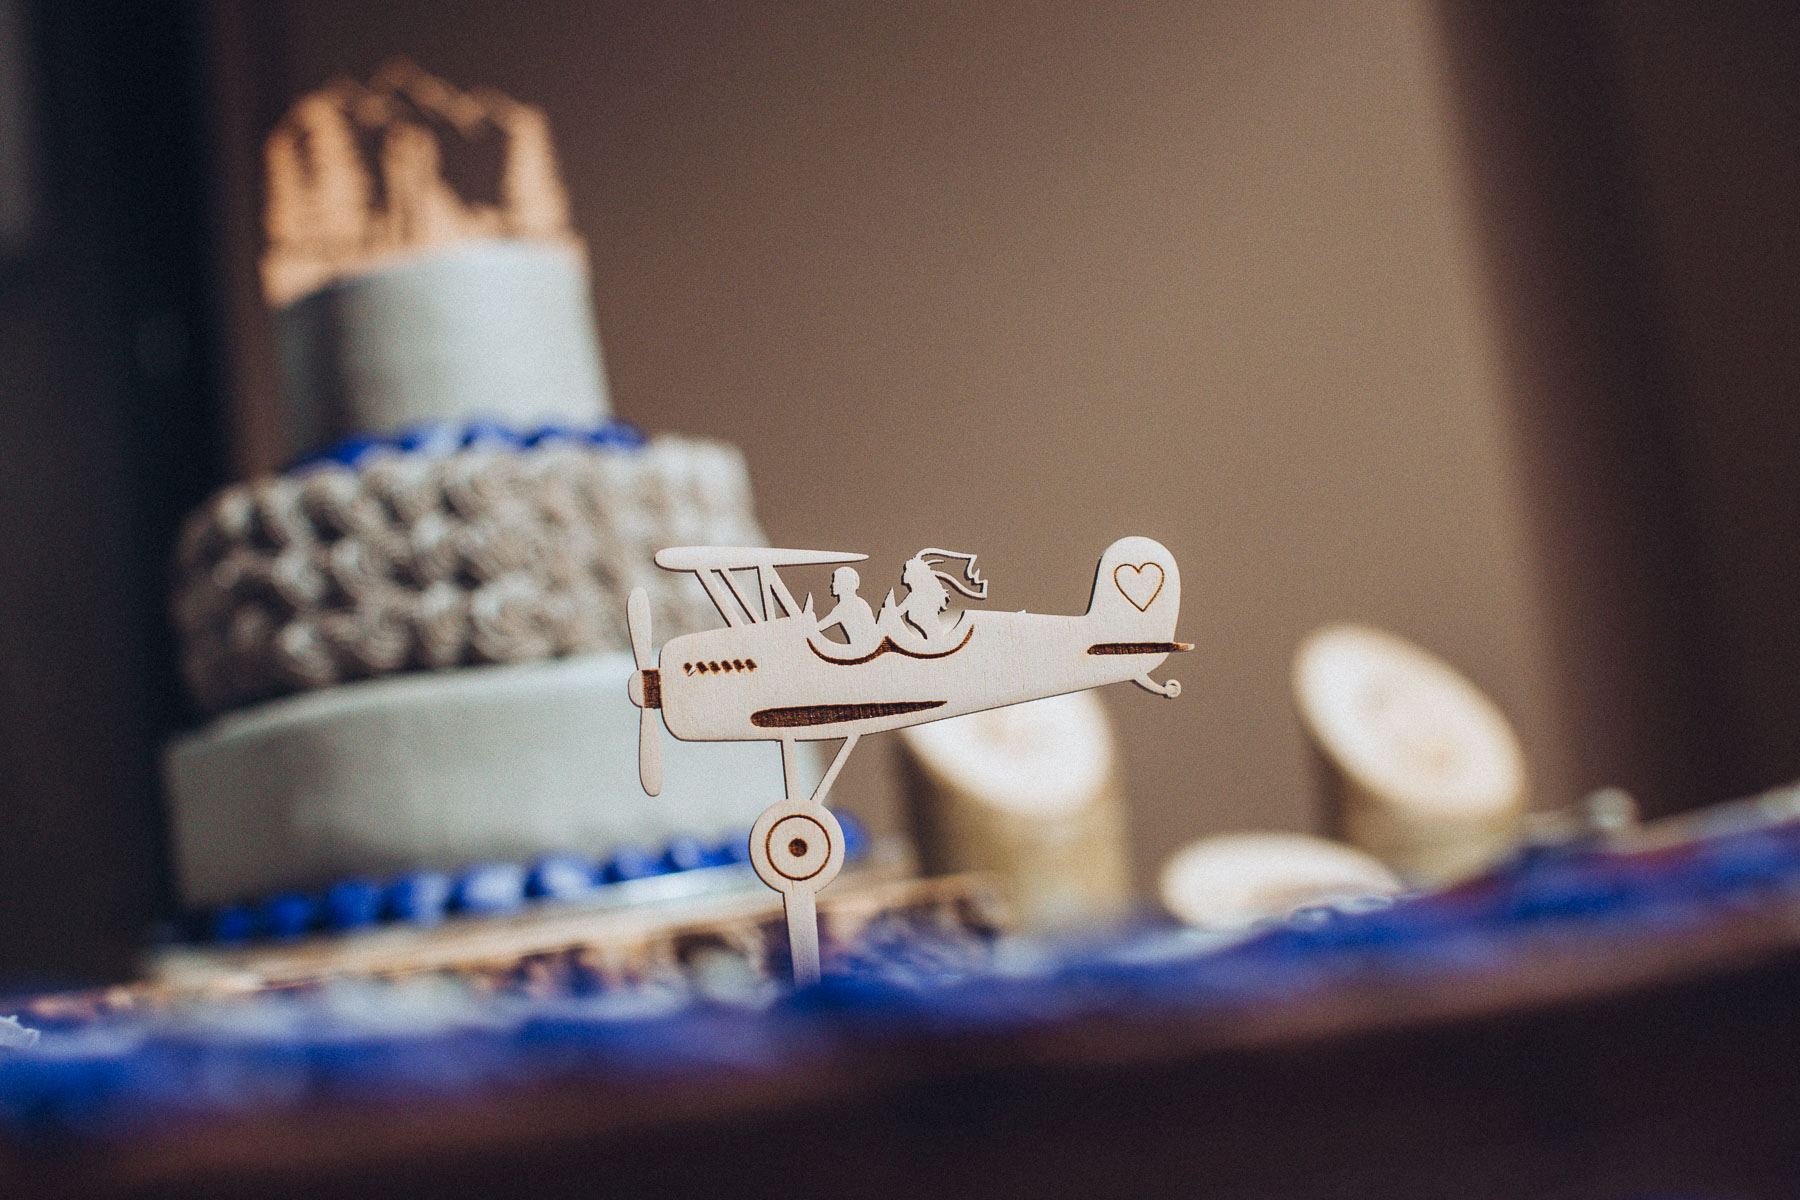 Wooden cake topper showing bride and groom riding in airplane.